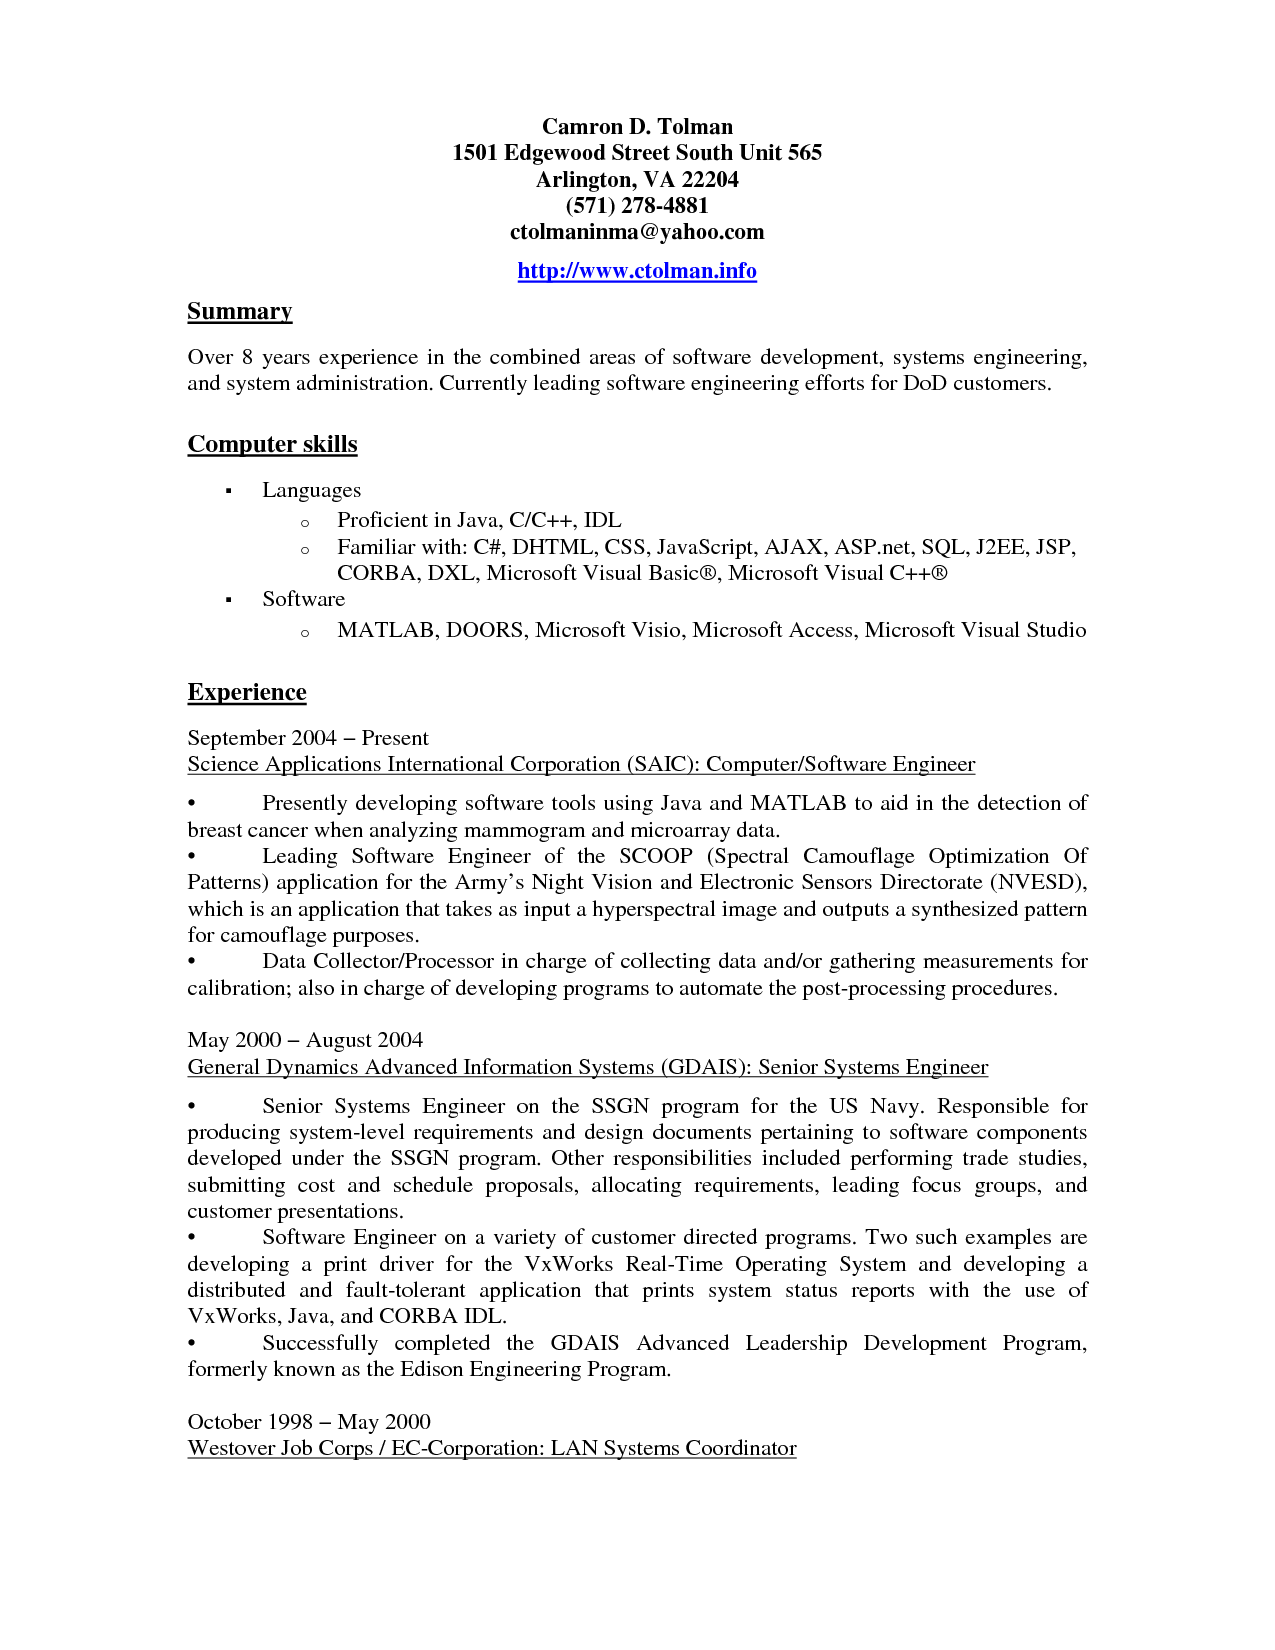 Tech Resume Examples Computer Proficiency Resume Sample  Httpwwwresumecareer